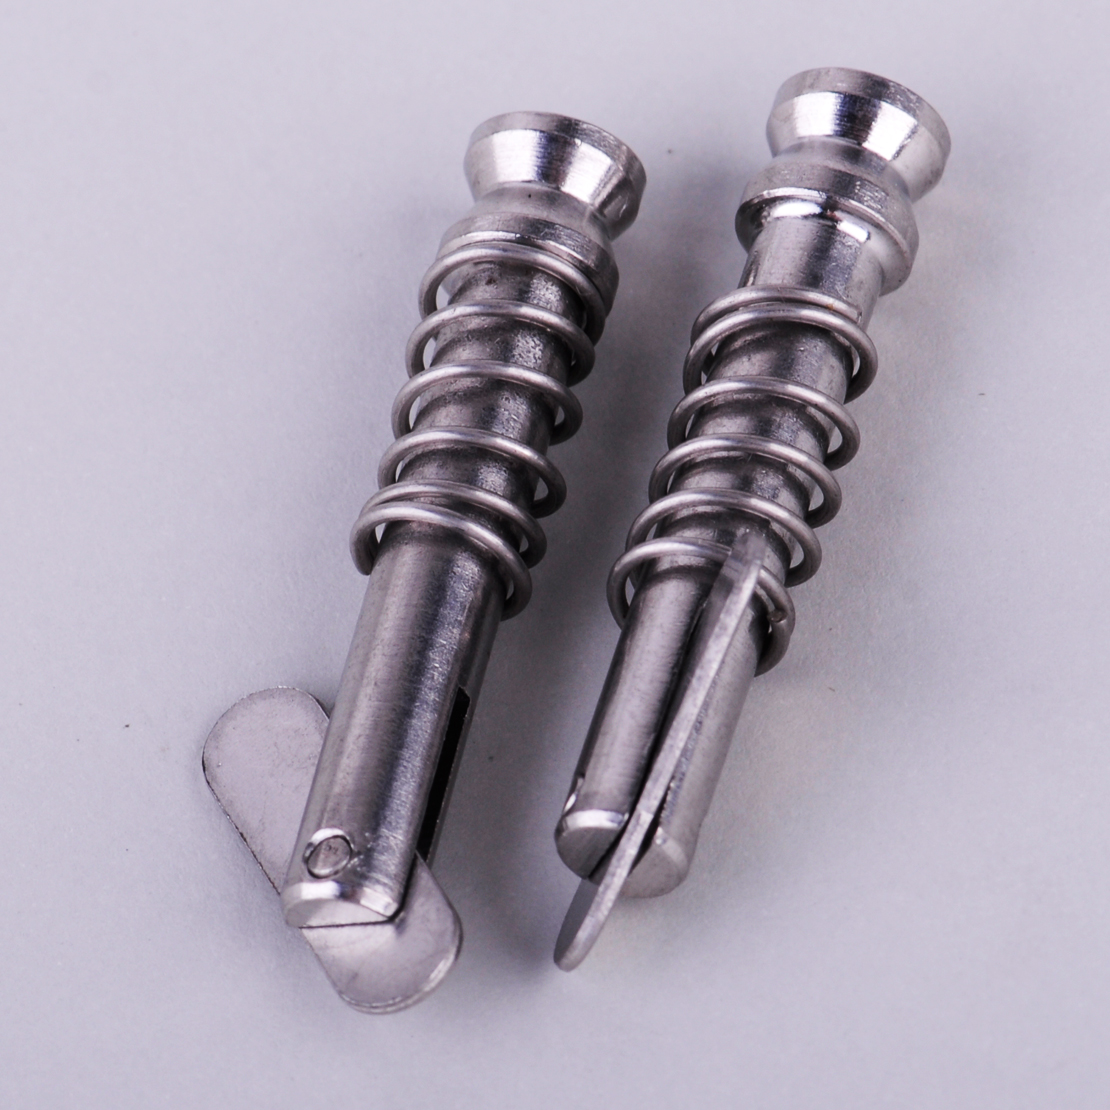 Full 316 Stainless Steel 1 inch Usable Length 6 Pack Boat Bimini Top Quick Release Pin 1//4 inch 10mm Diameter